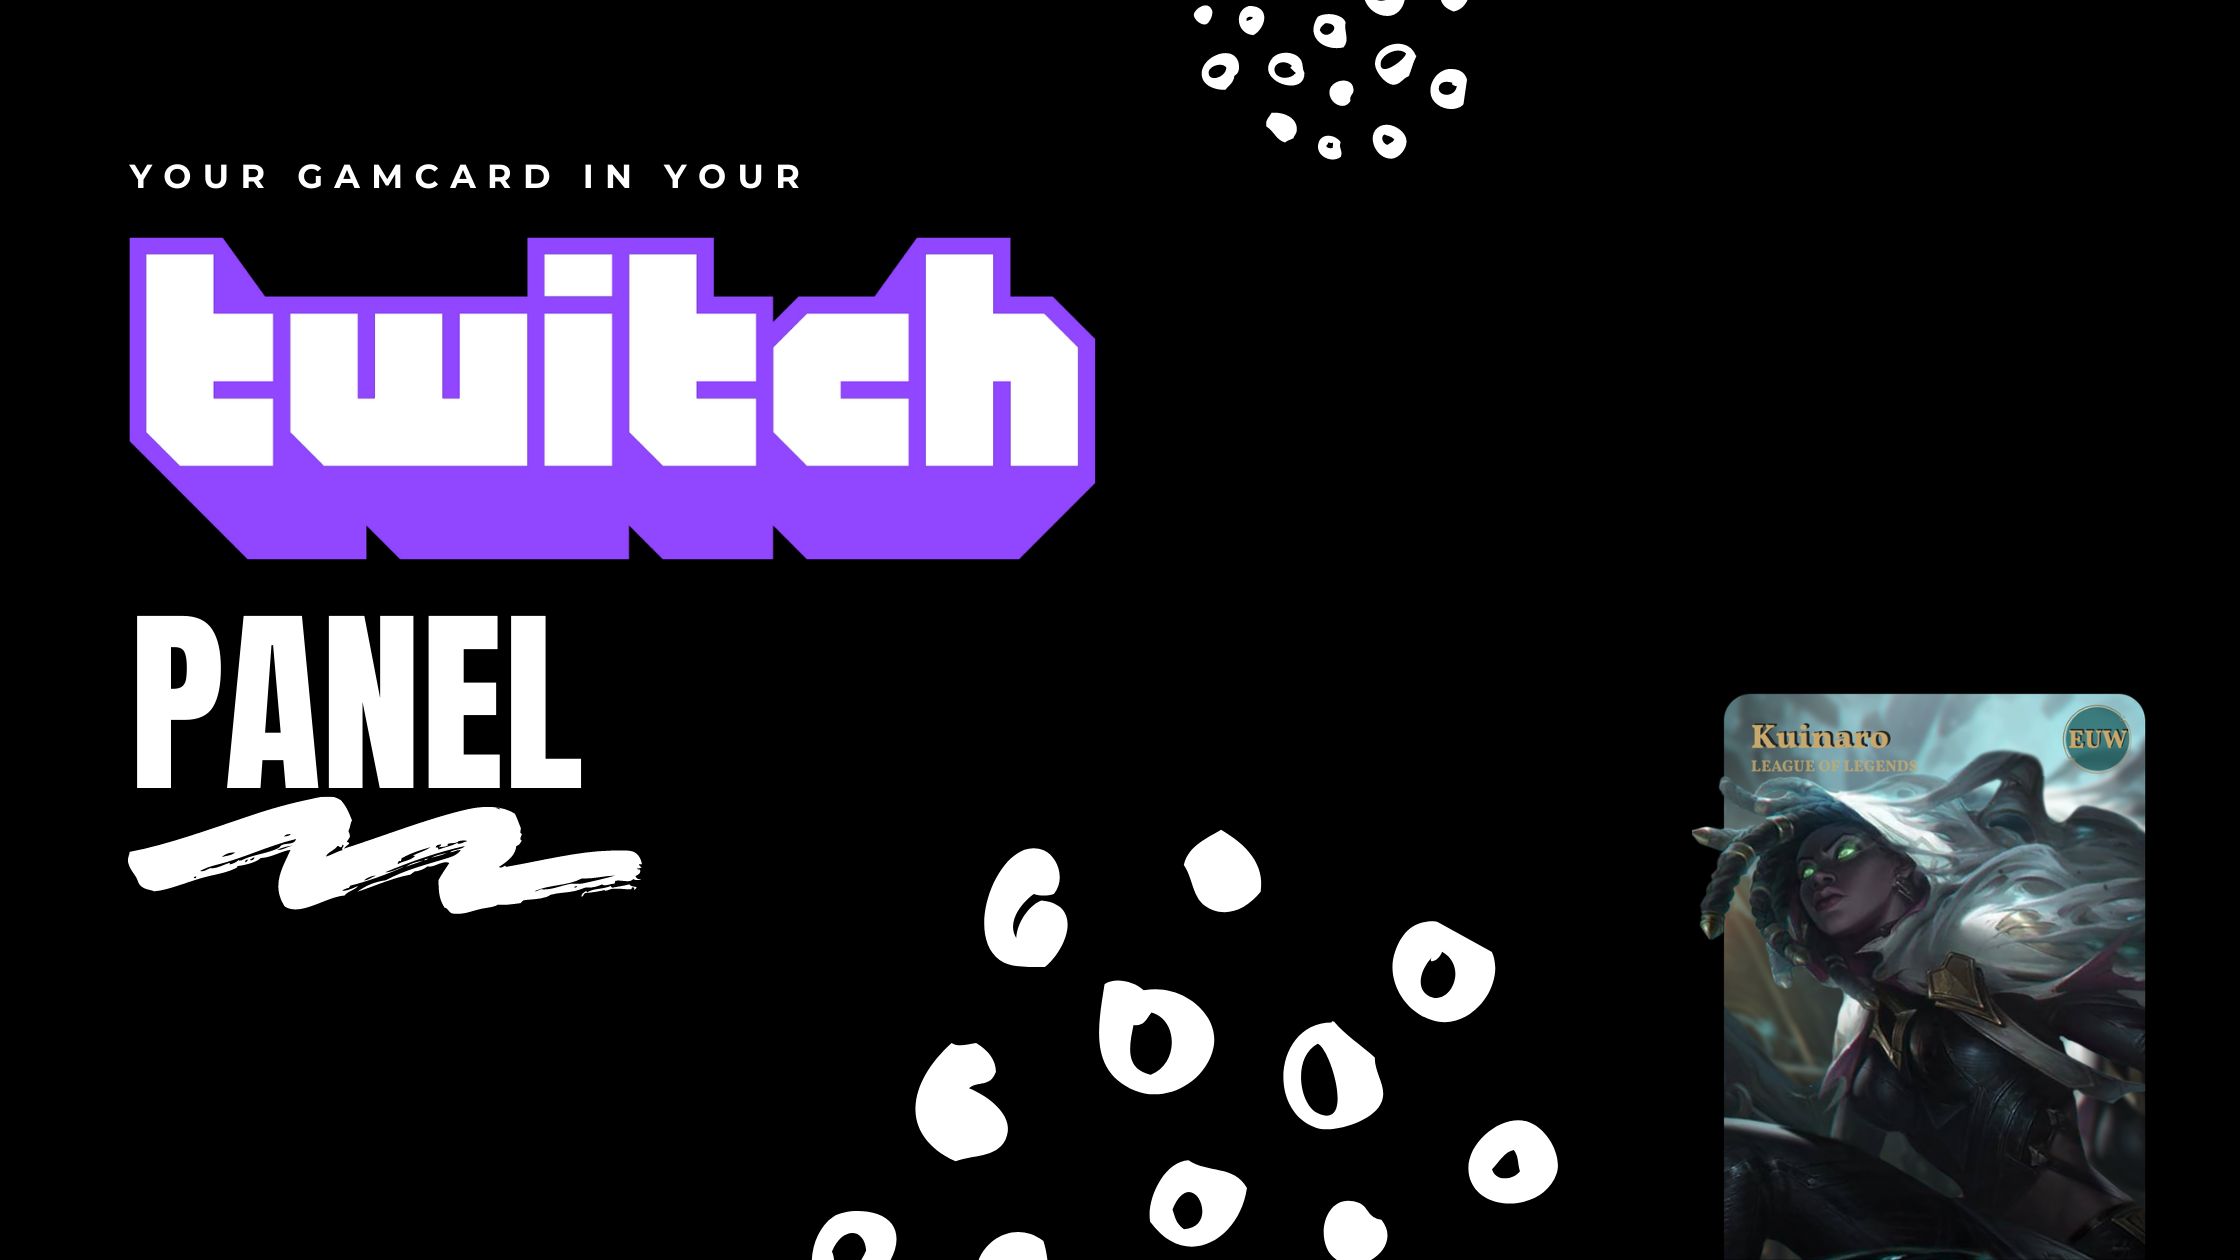 Your flint.gg Gamecard as a Twitch Panel